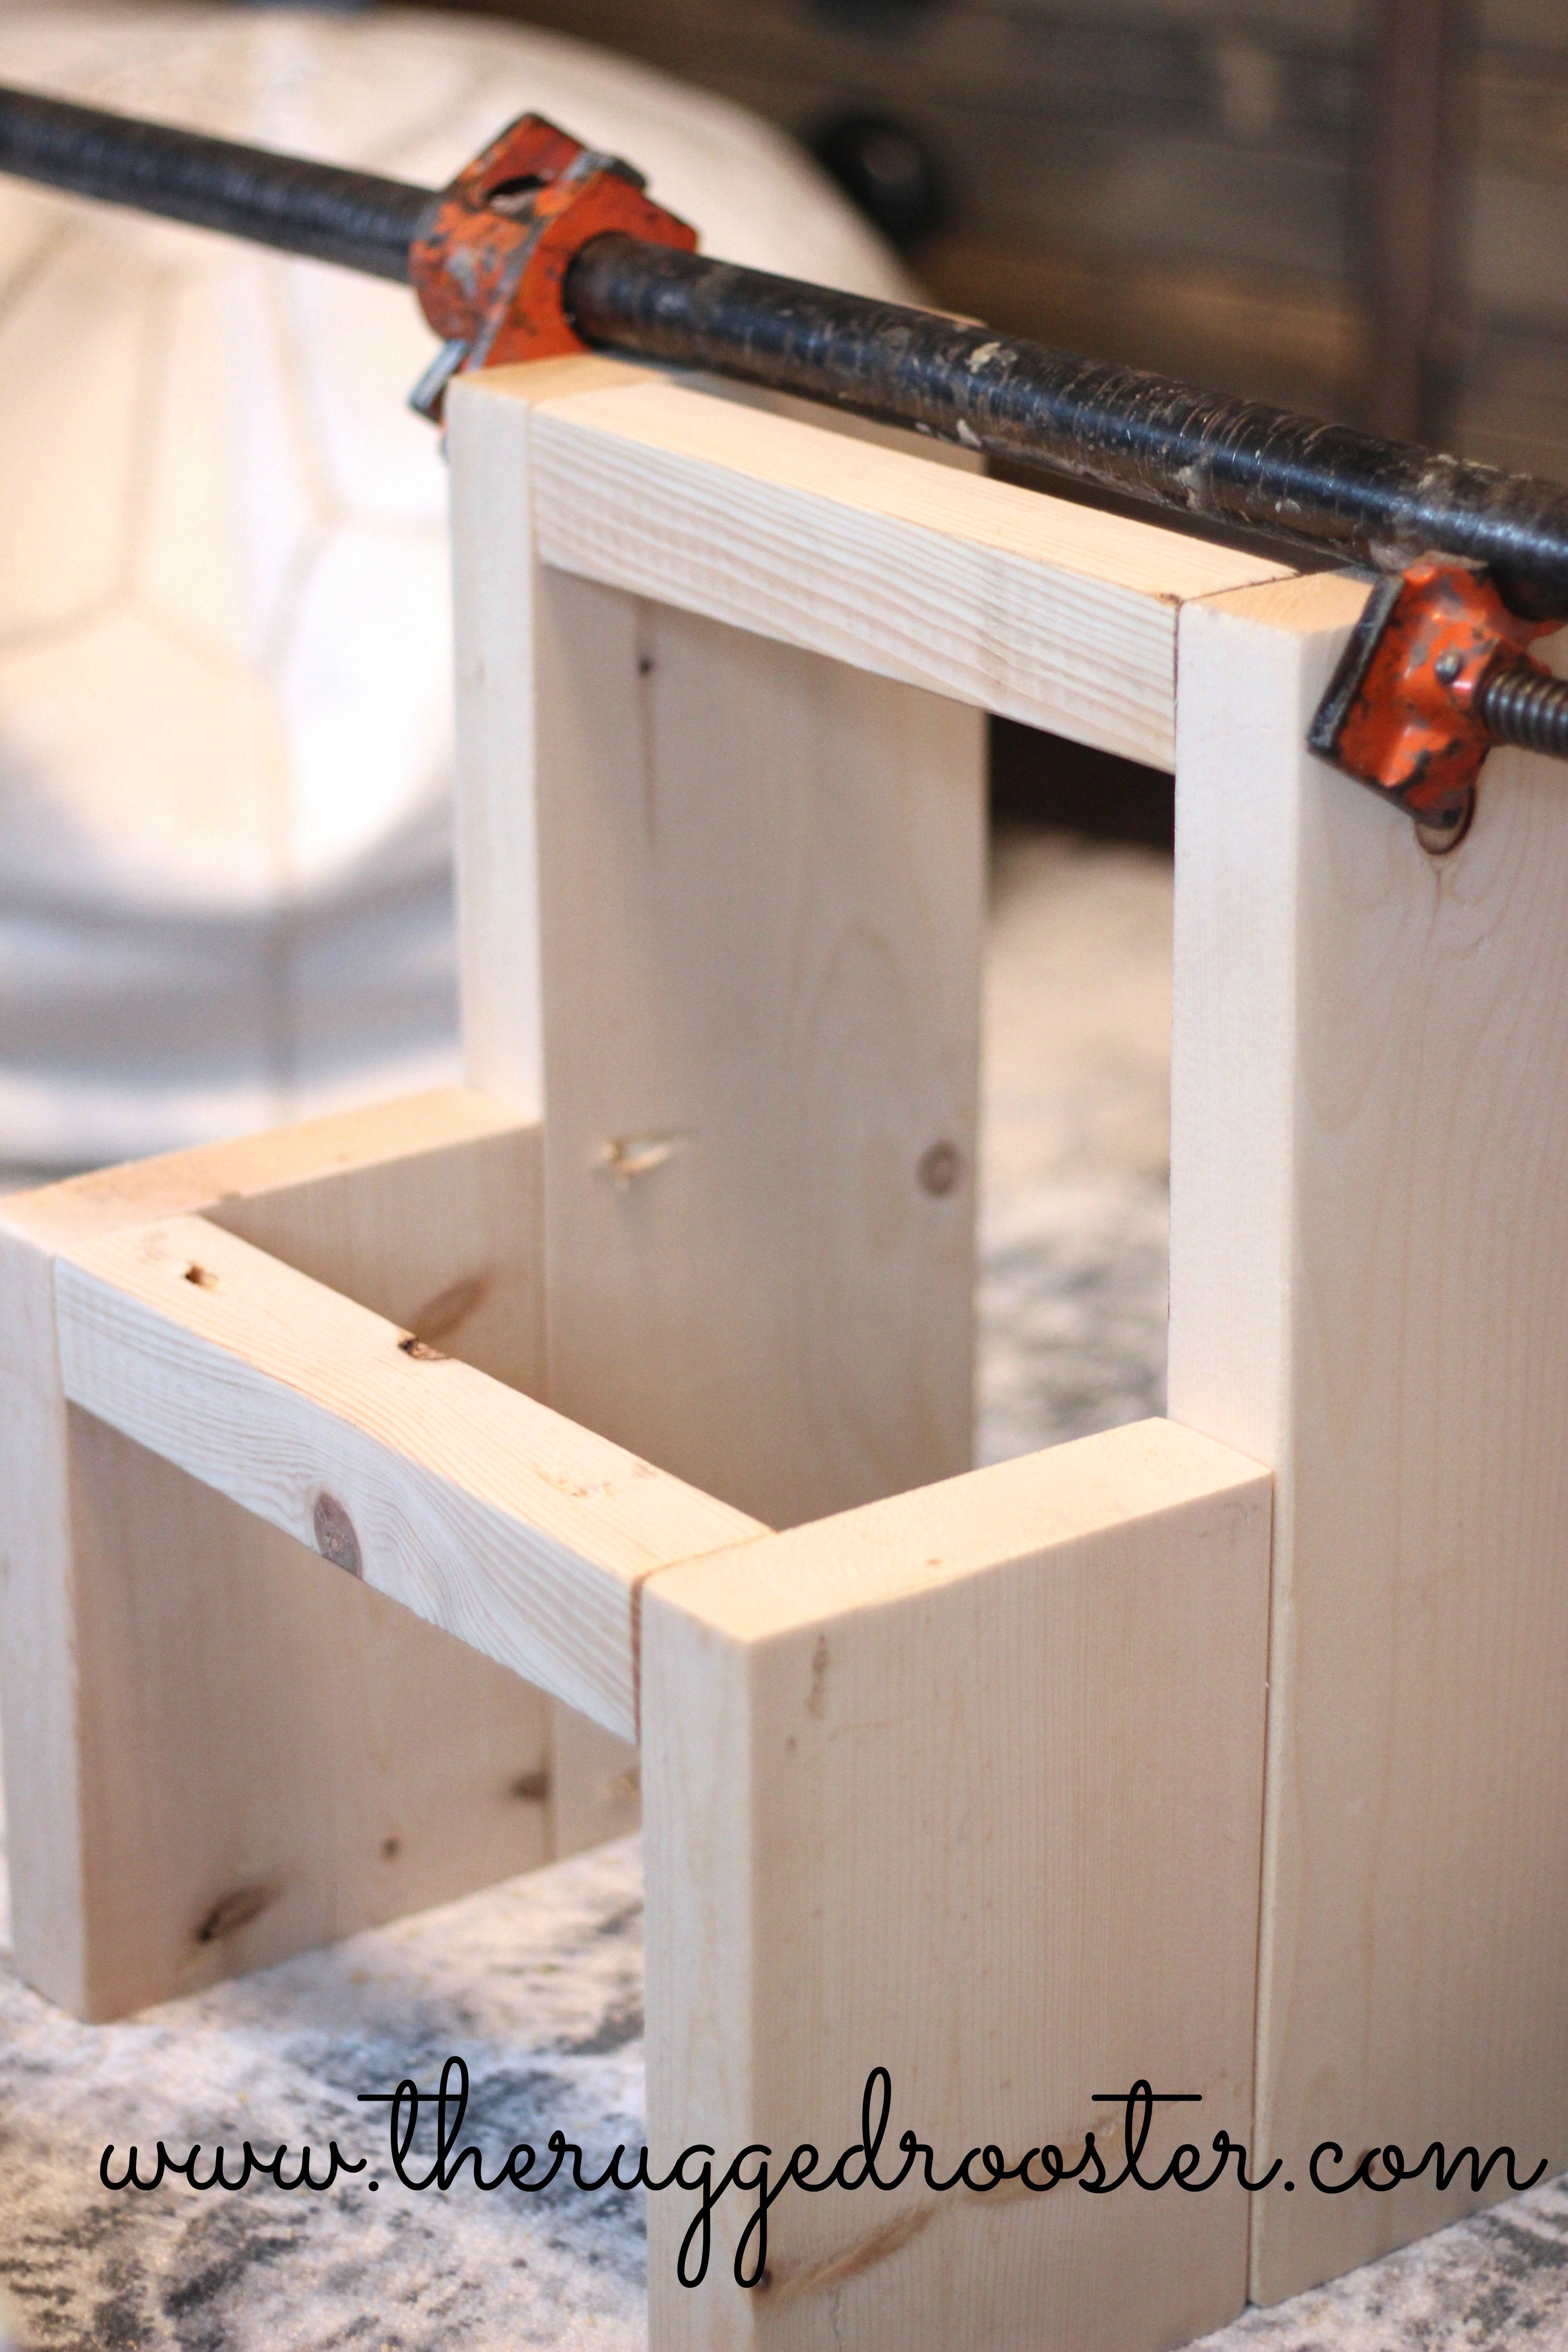 Building a DIY Stool, Step Stool